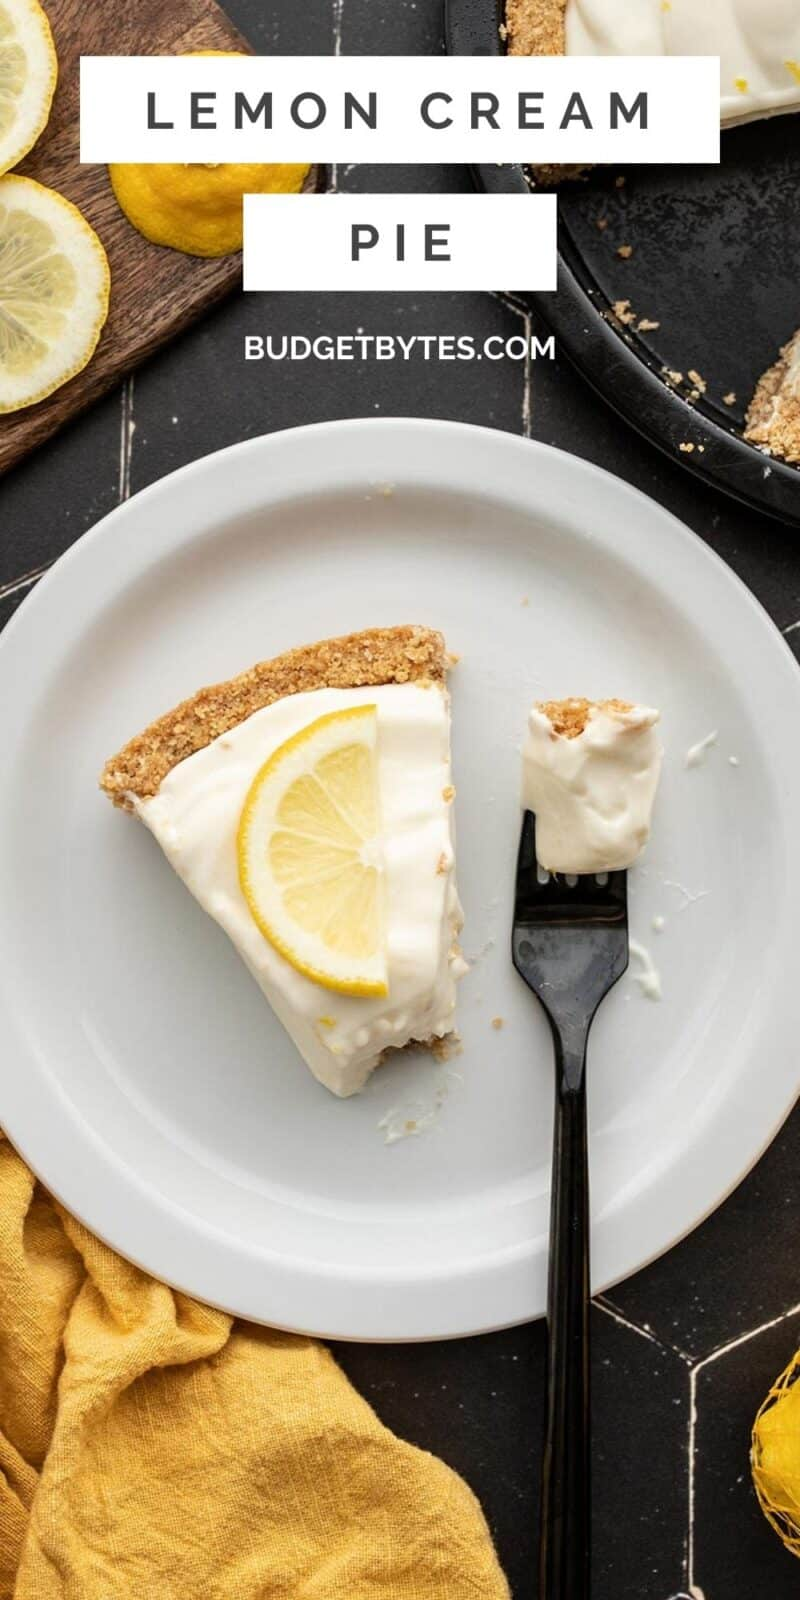 one slice of lemon cream pie on a plate with a fork